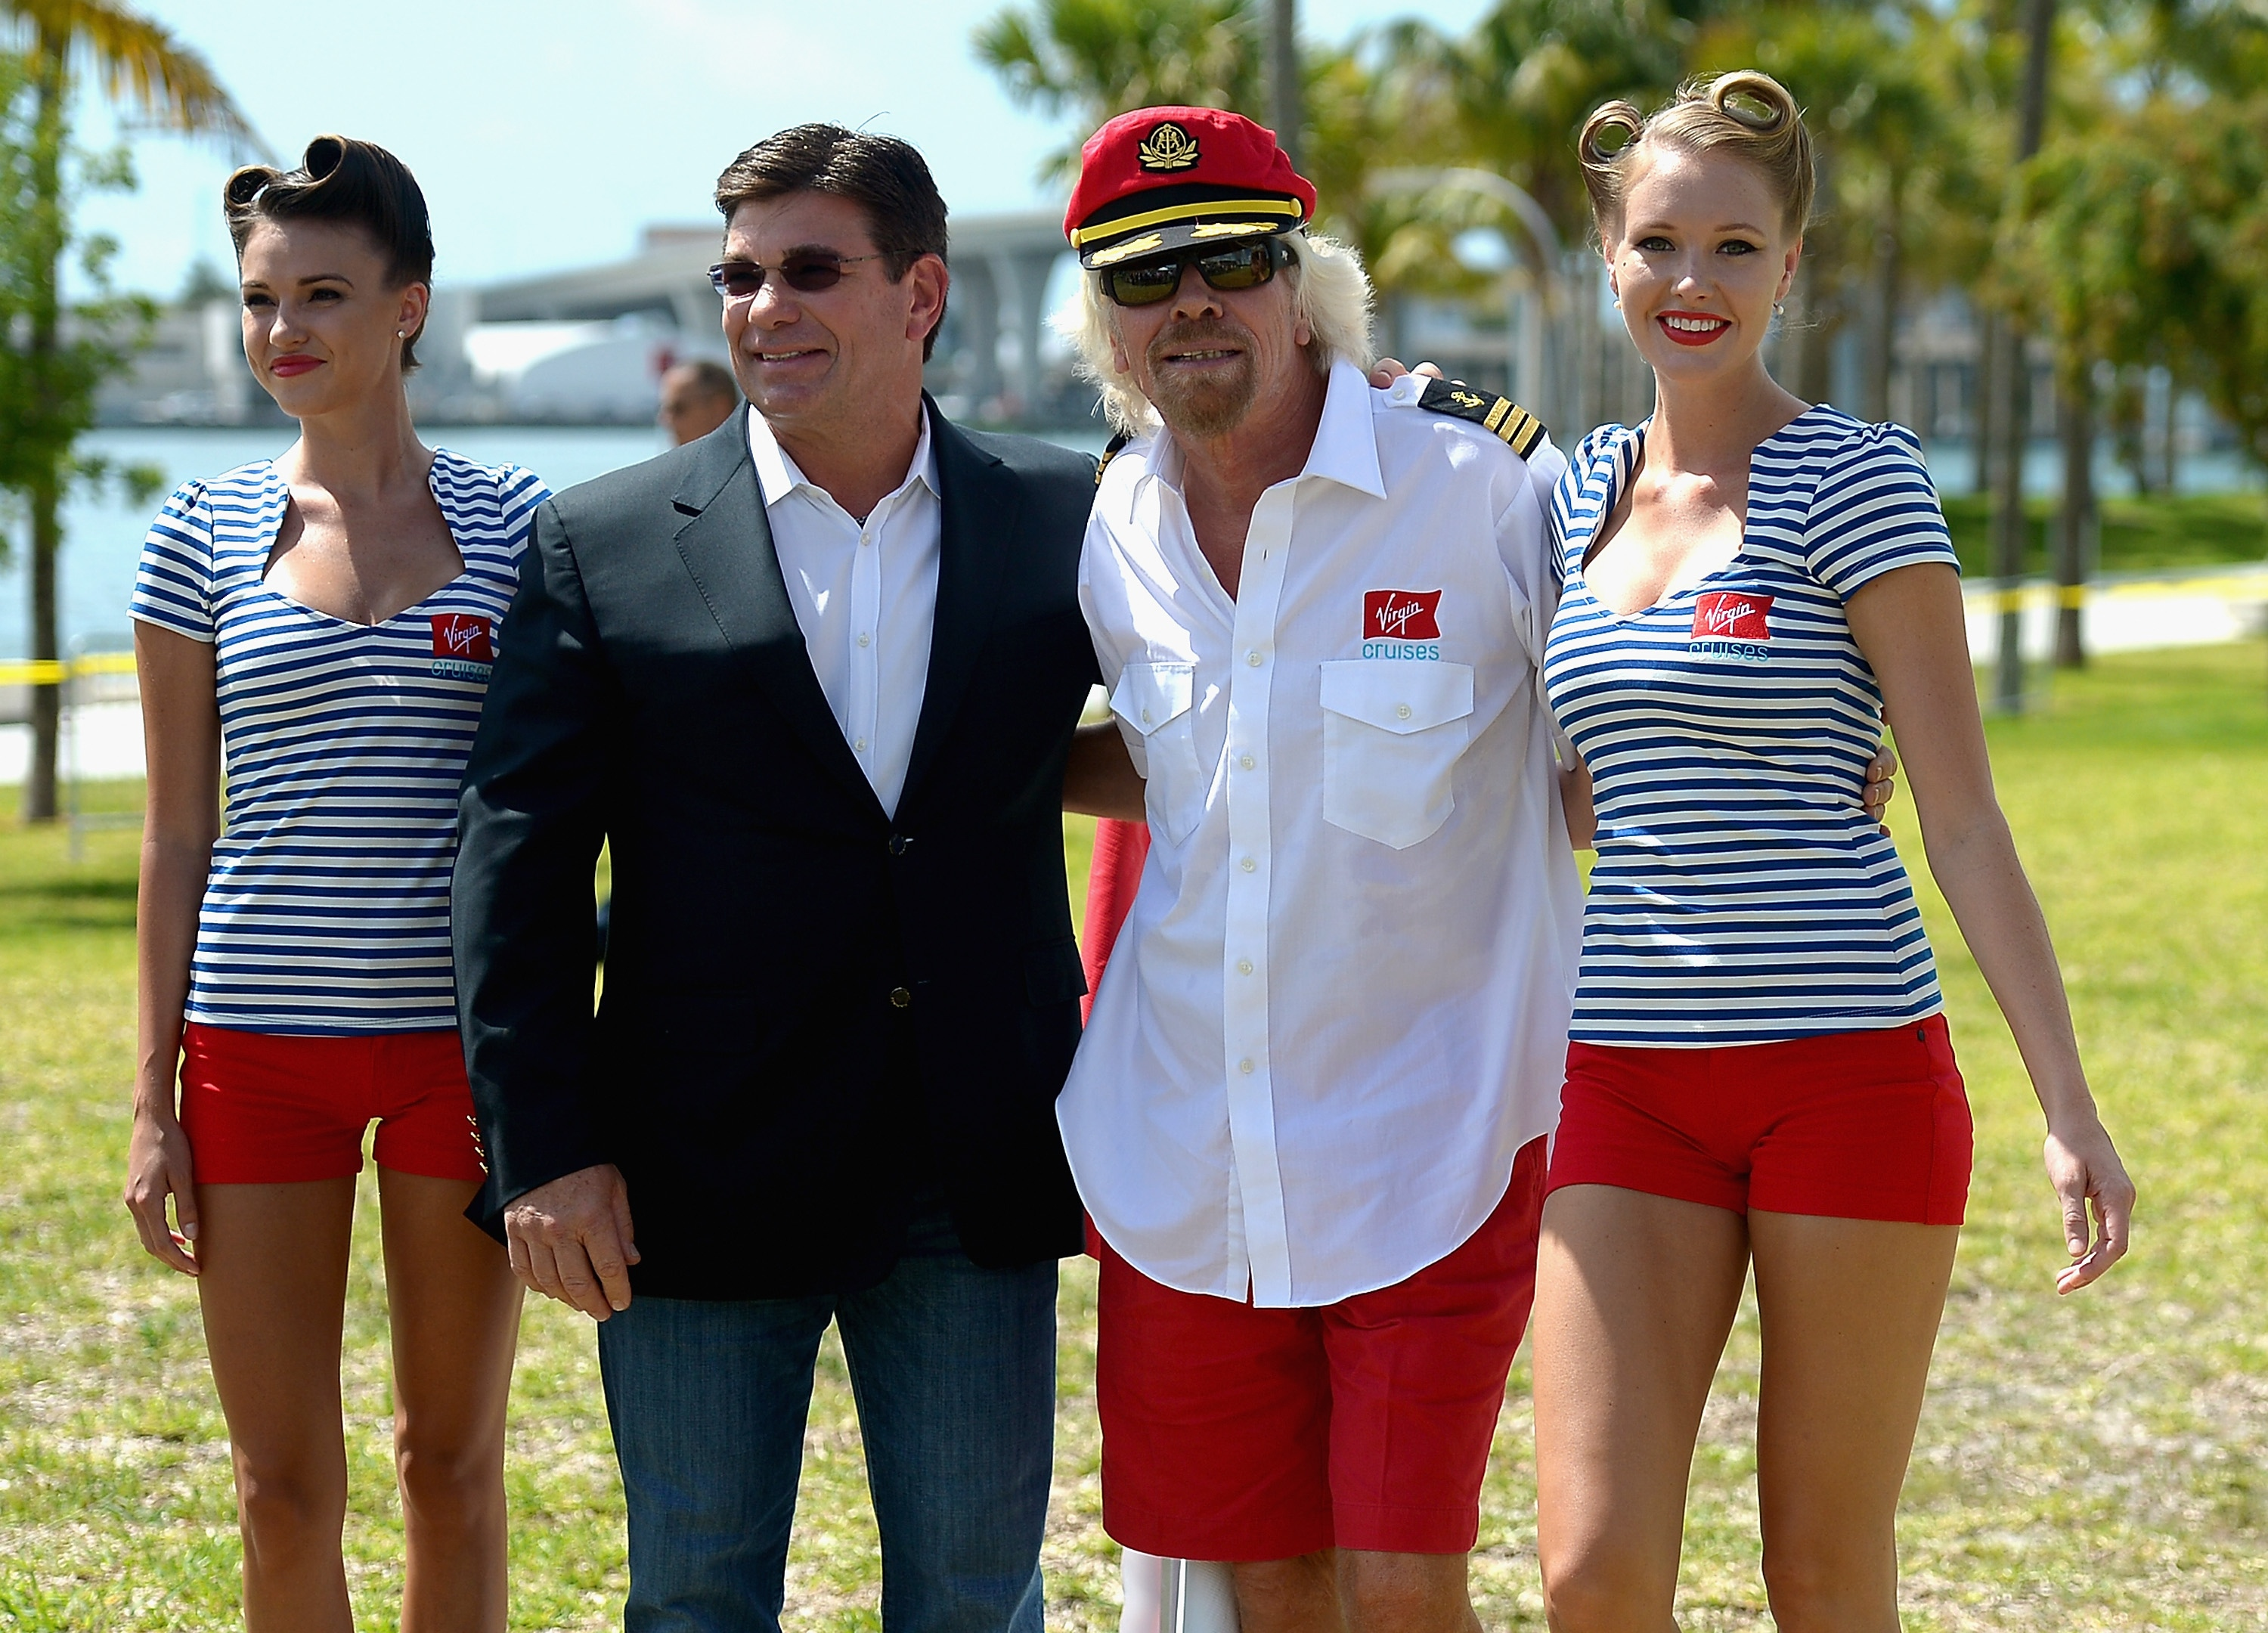 MIAMI, FL - JUNE 23: Tom McAplin and Sir Richard Branson attend a photocall for the announcement that the home port of Virgin Cruises will be in Miami at Perez Art Museum Miami on June 23, 2015 in Miami, Florida. (Photo by Gustavo Caballero/Getty Images)